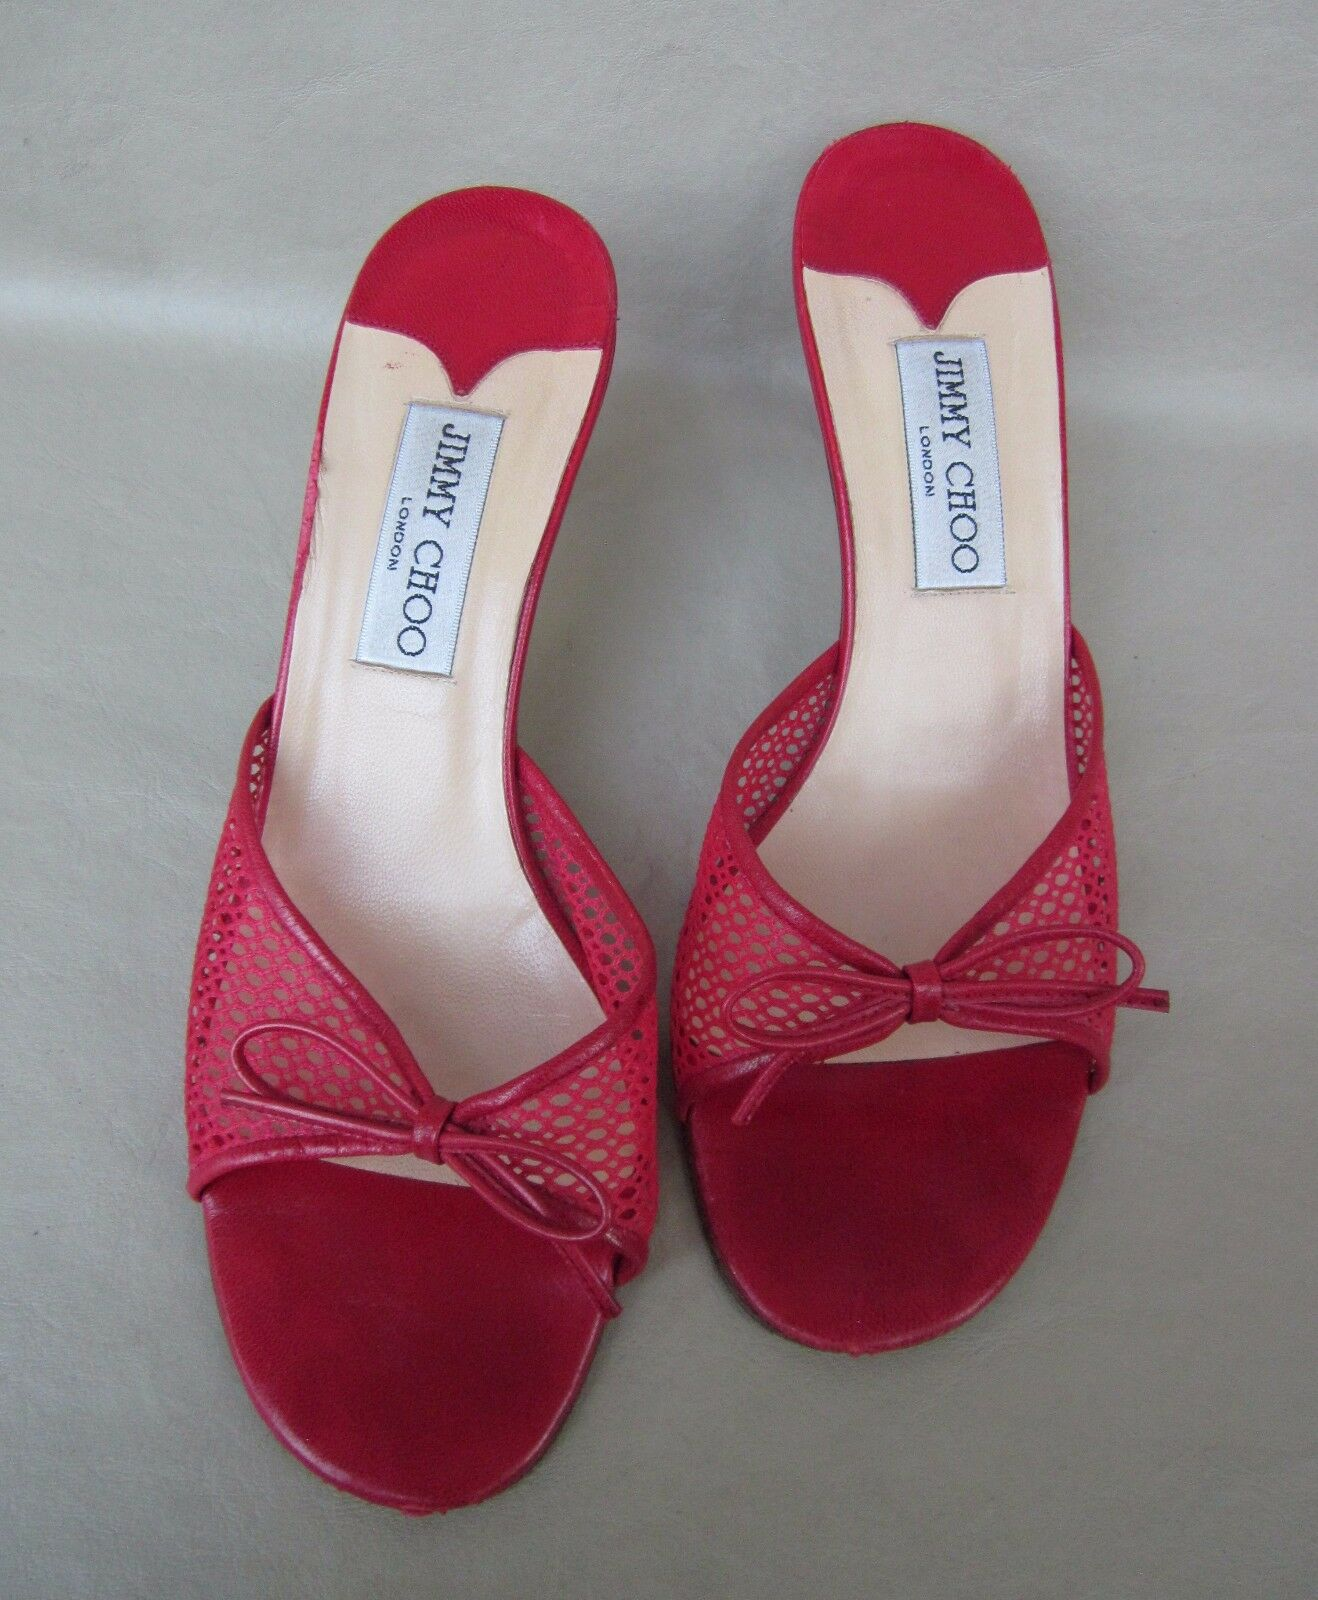 JIMMY CHOO Kitten Heel Slides/Shoes Rosso Mesh Bow Detail Euro 38 M/US 6.5 M Nice!